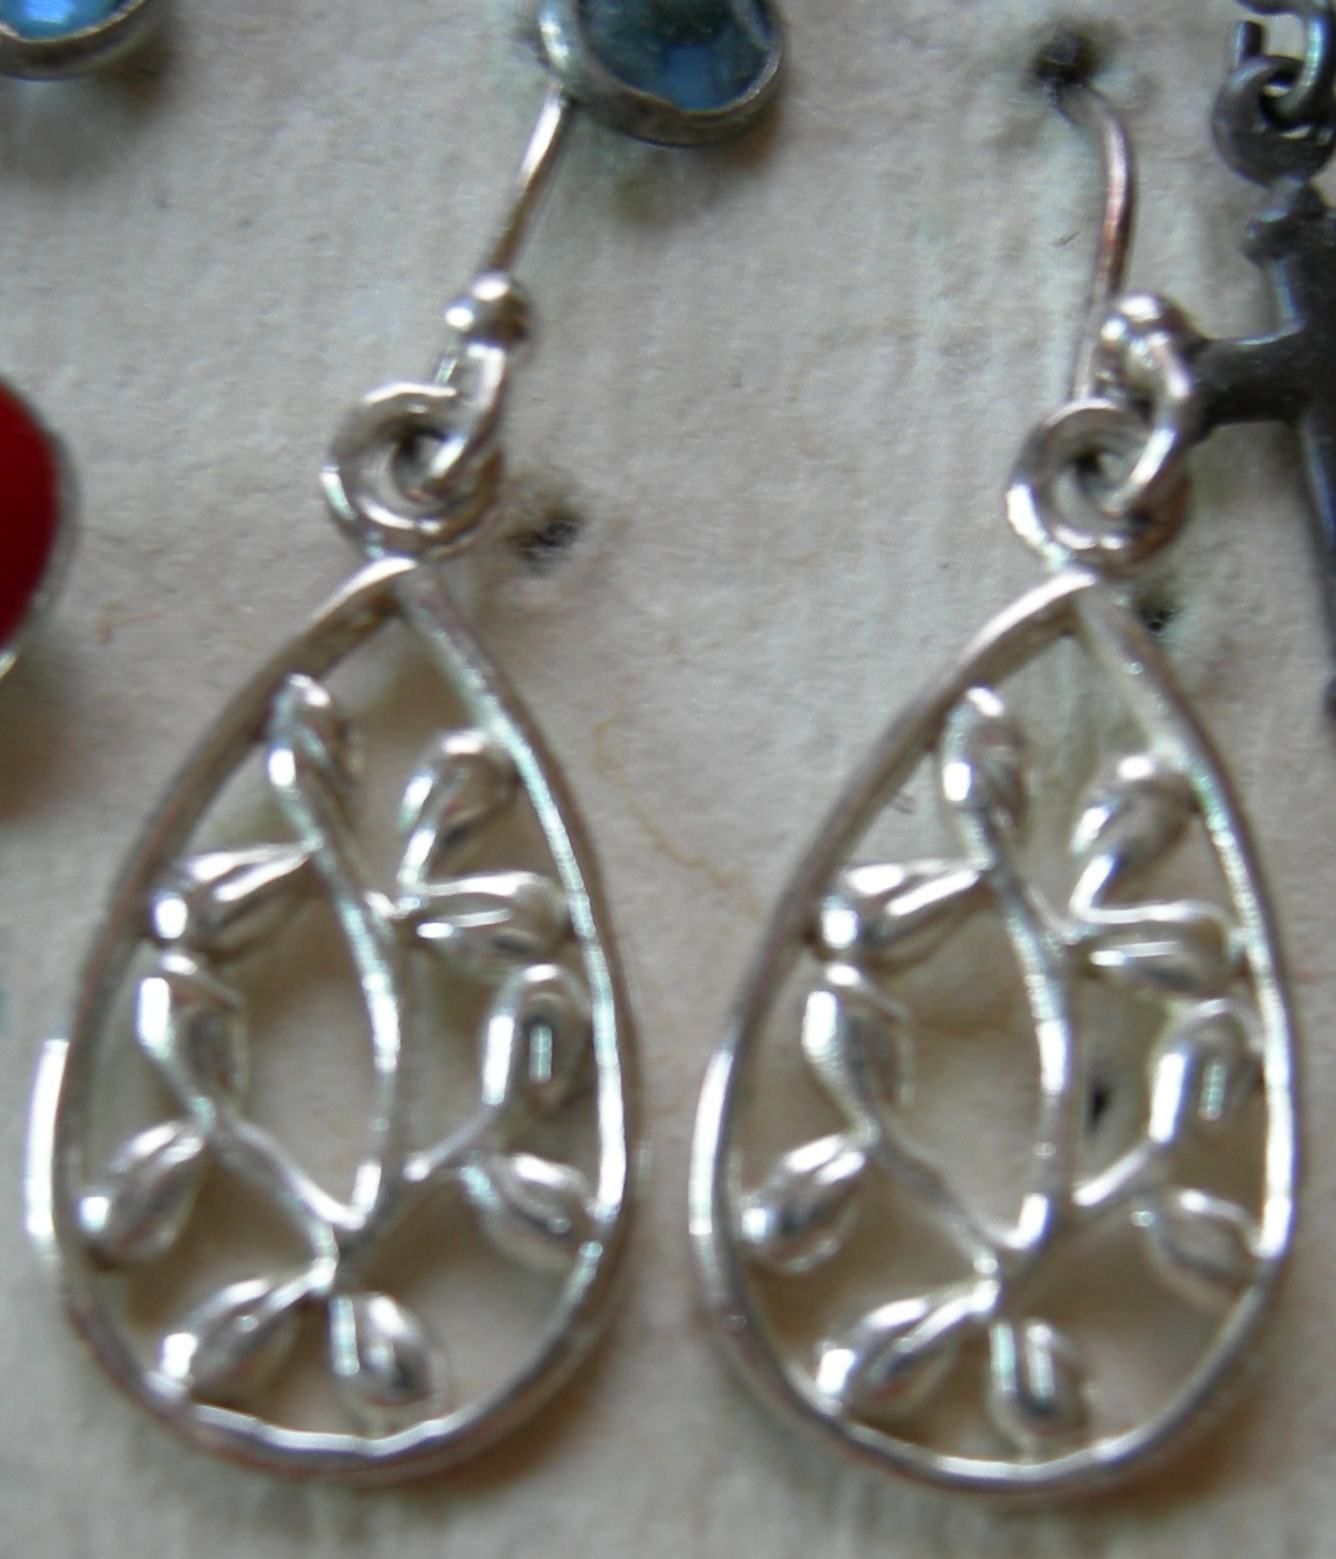 Loving And Serving: Cleaning Jewelry With Baking Soda